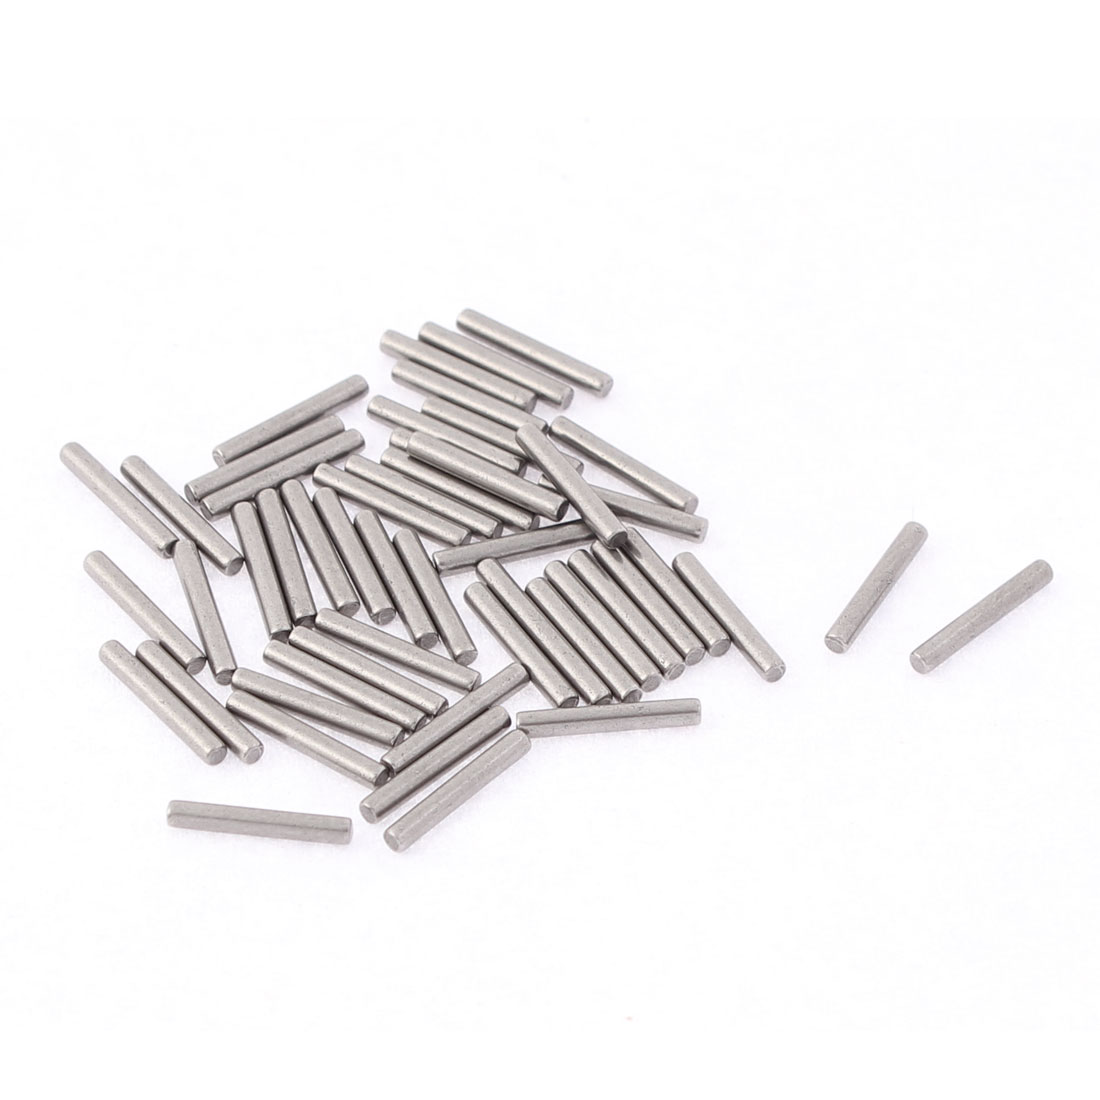 M1.5x10mm Stainless Steel Straight Retaining Dowel Pins Rod Fasten Elements 50pcs